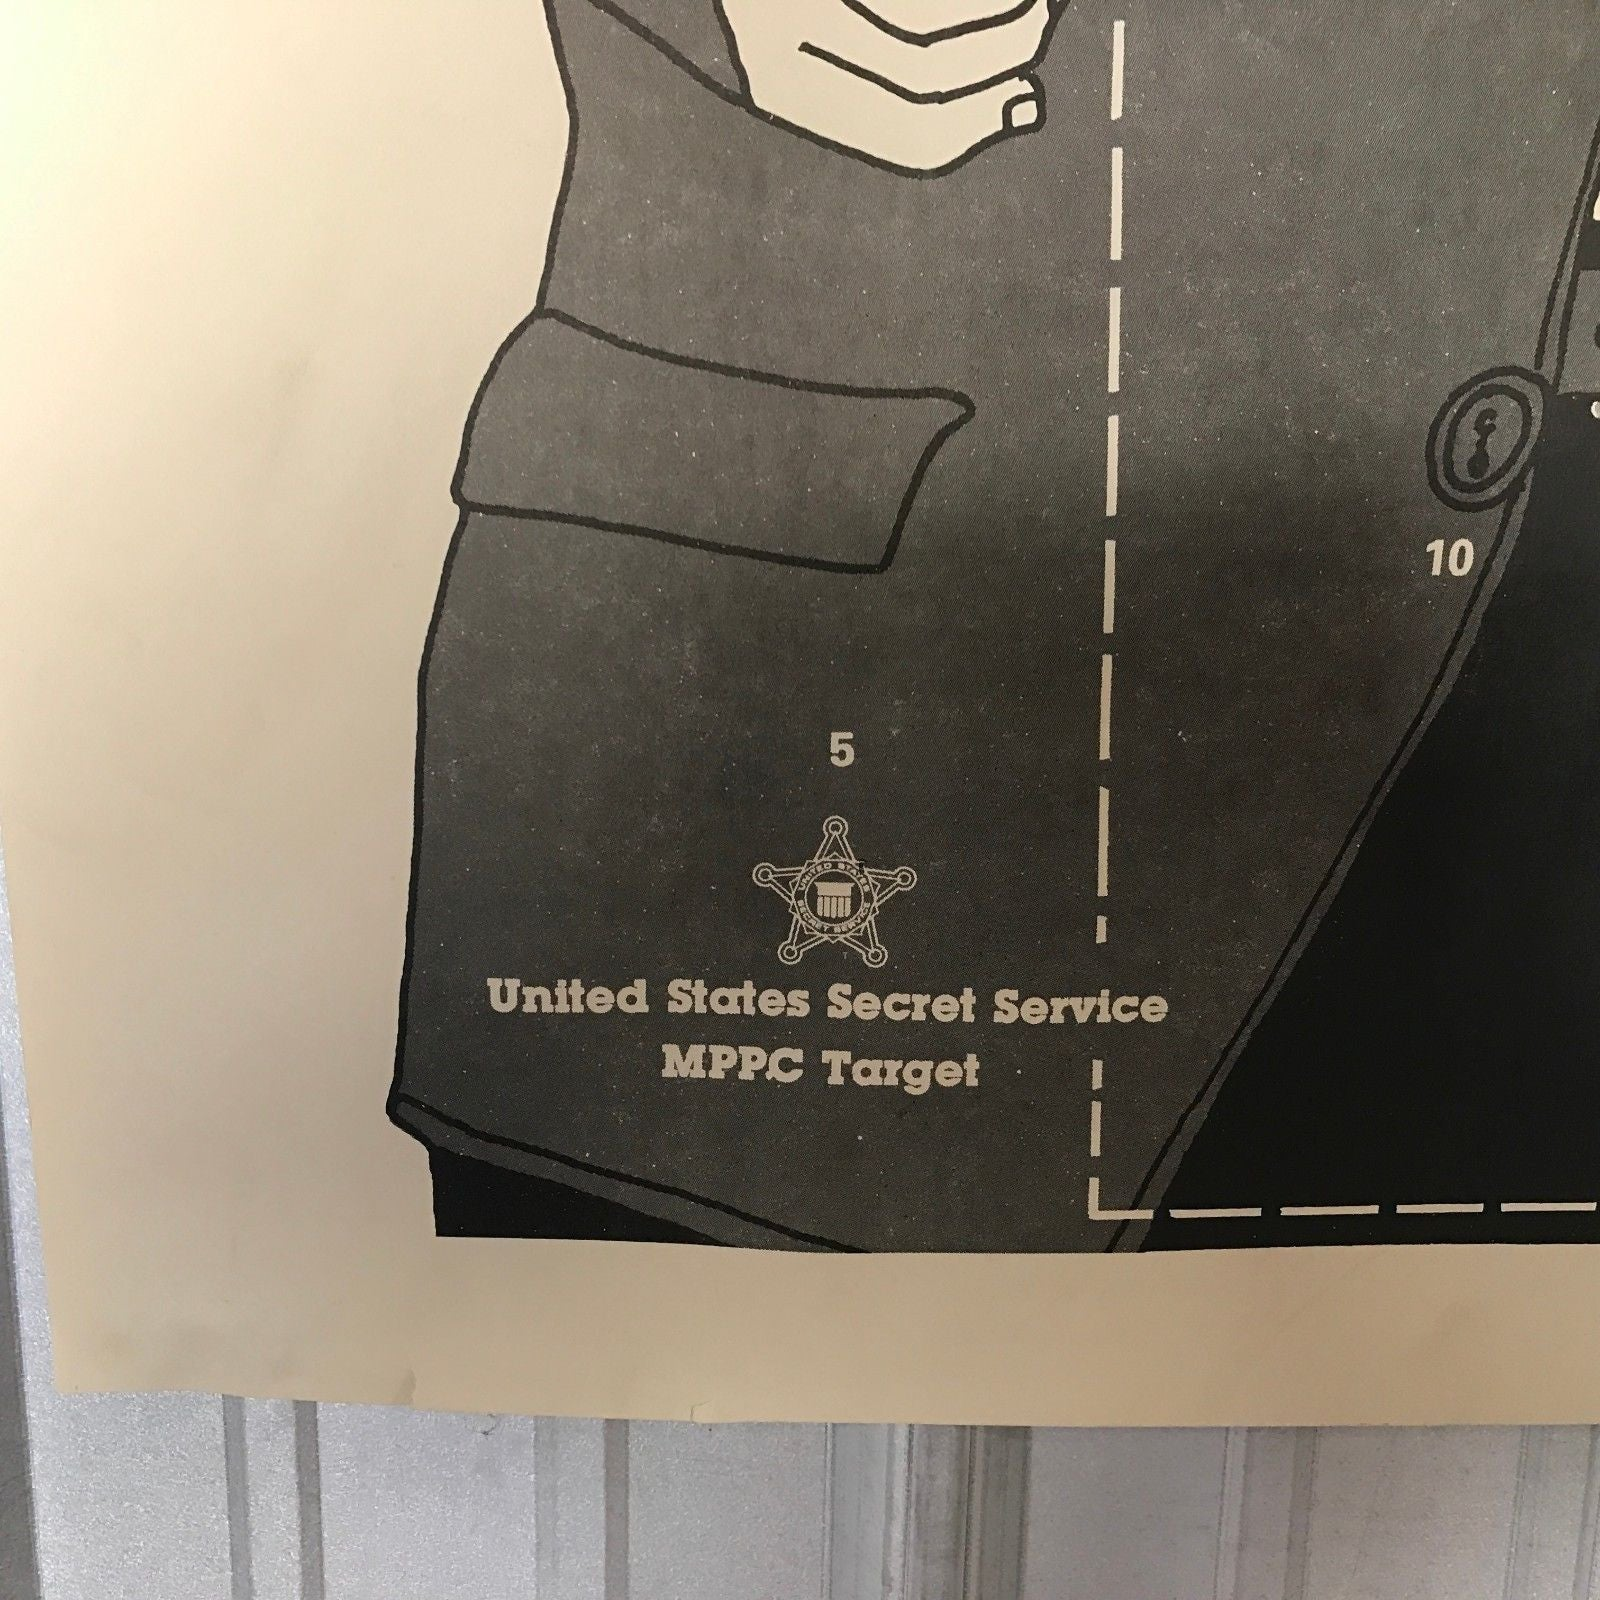 Secret service research paper